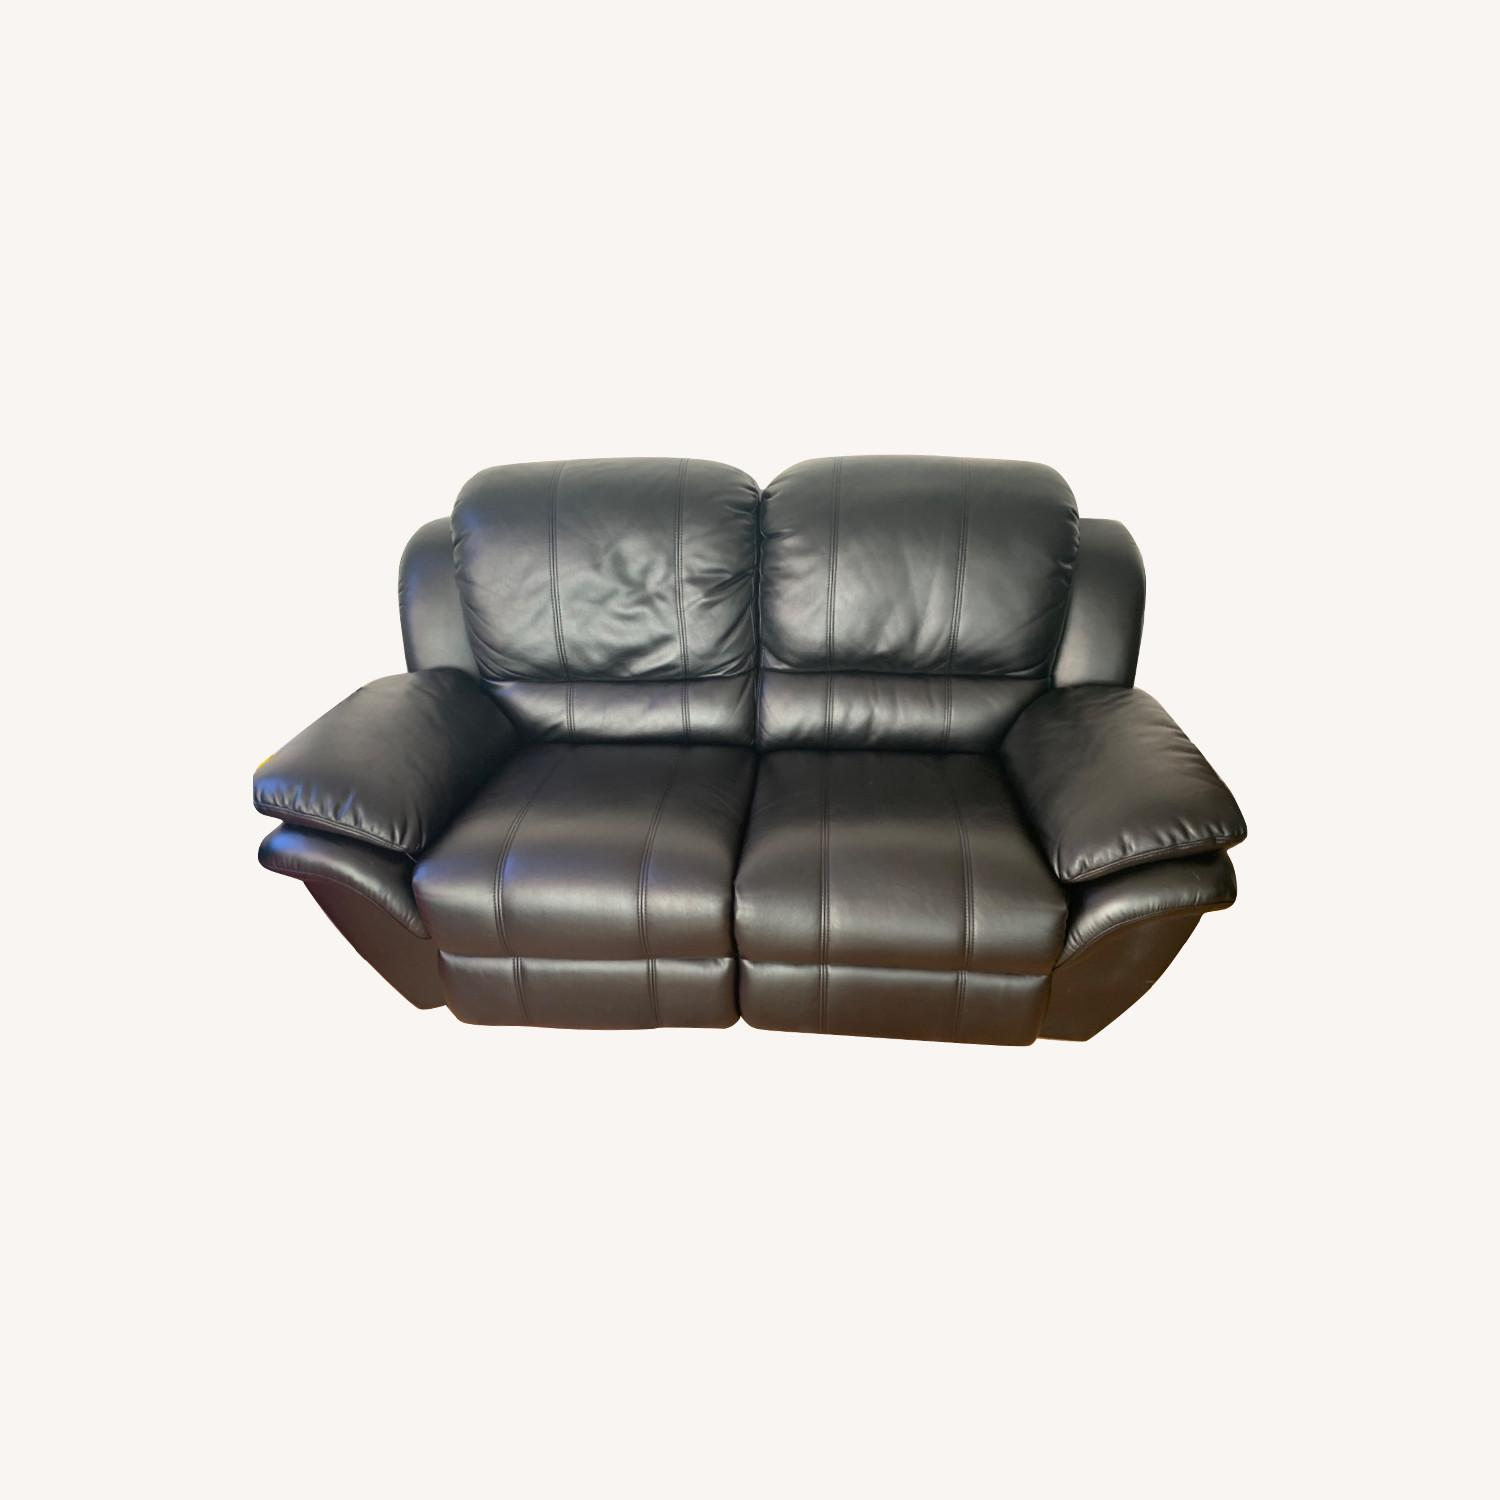 Bobs Black Leather Automatic Recliner Loveseat - image-0